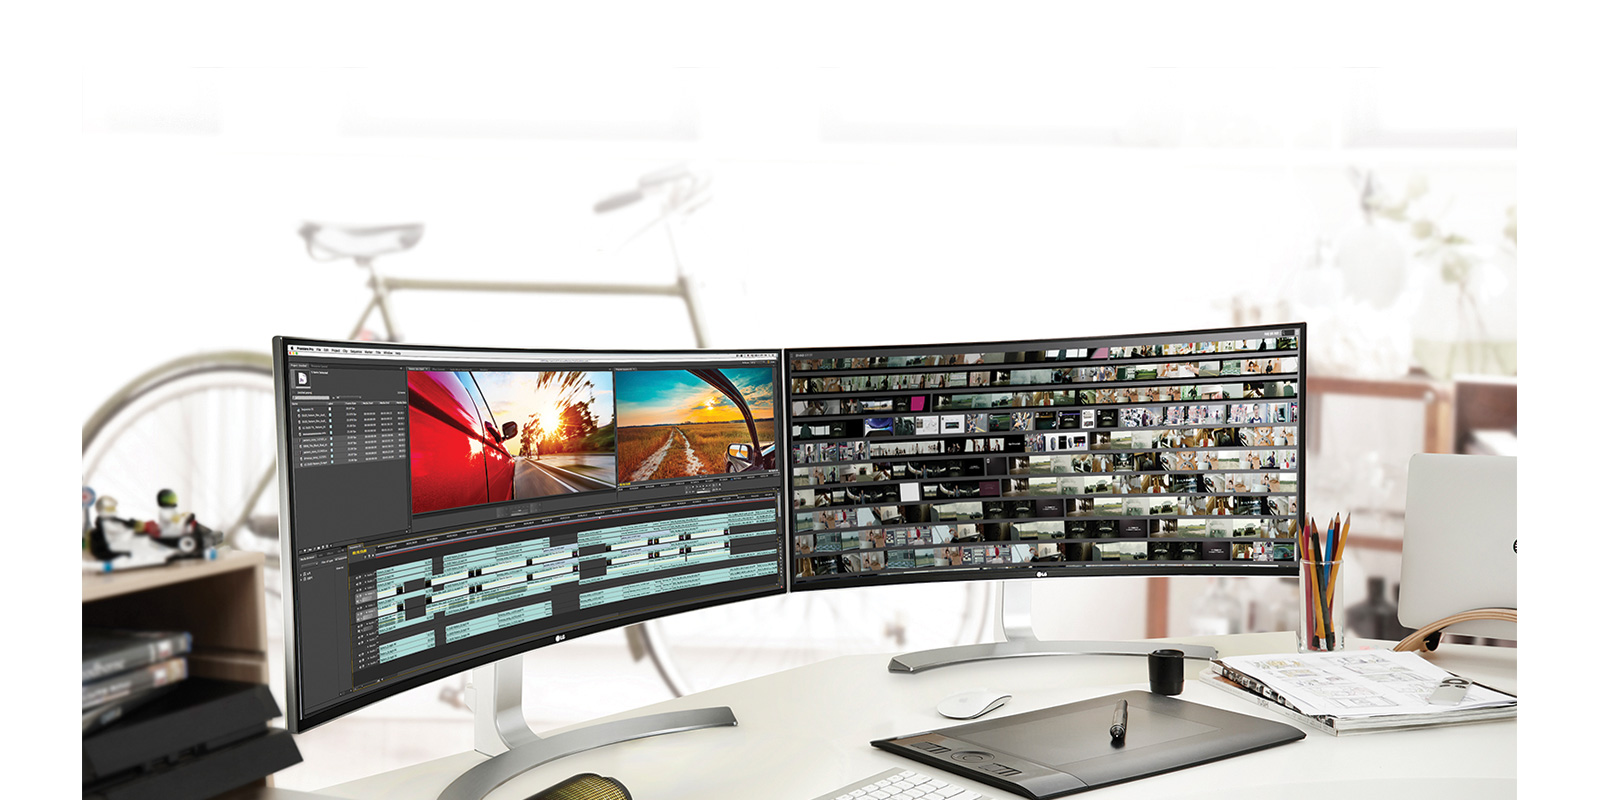 LG Takes MMOHuts to Next Level Editing Quality